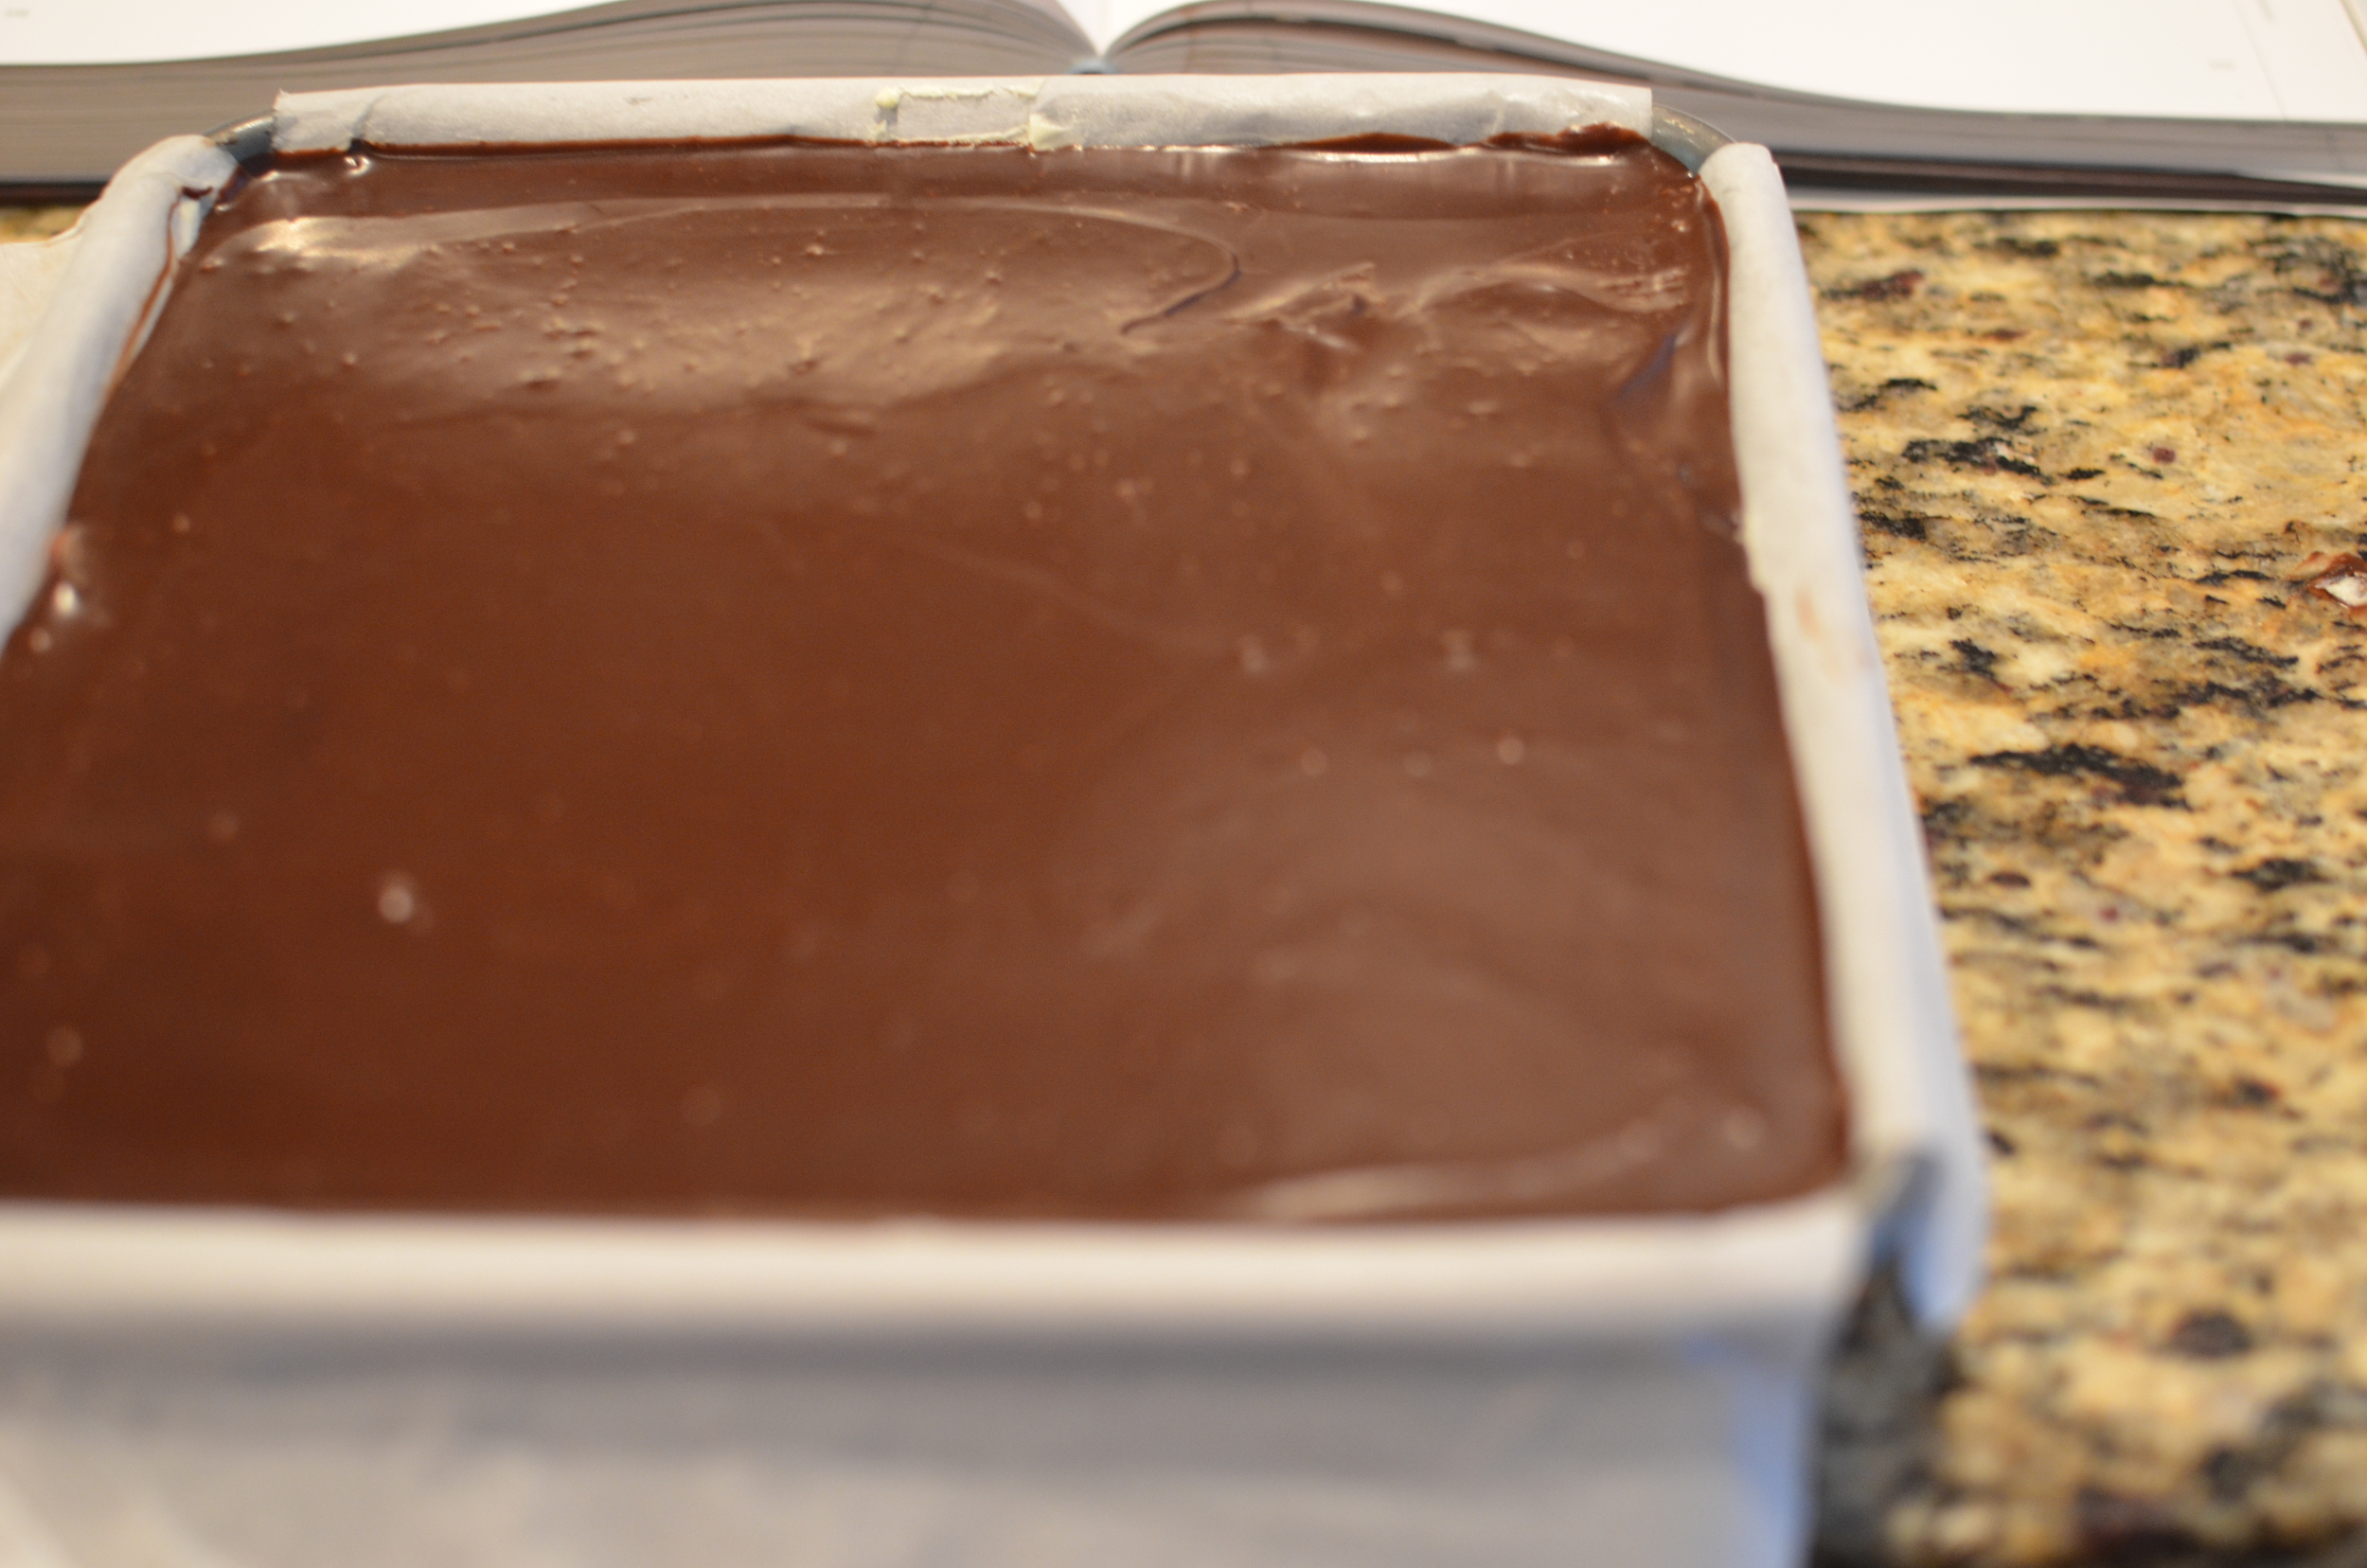 Spread the ganache layer on top of the white chocolate buttercream layer and chill well before unmolding.